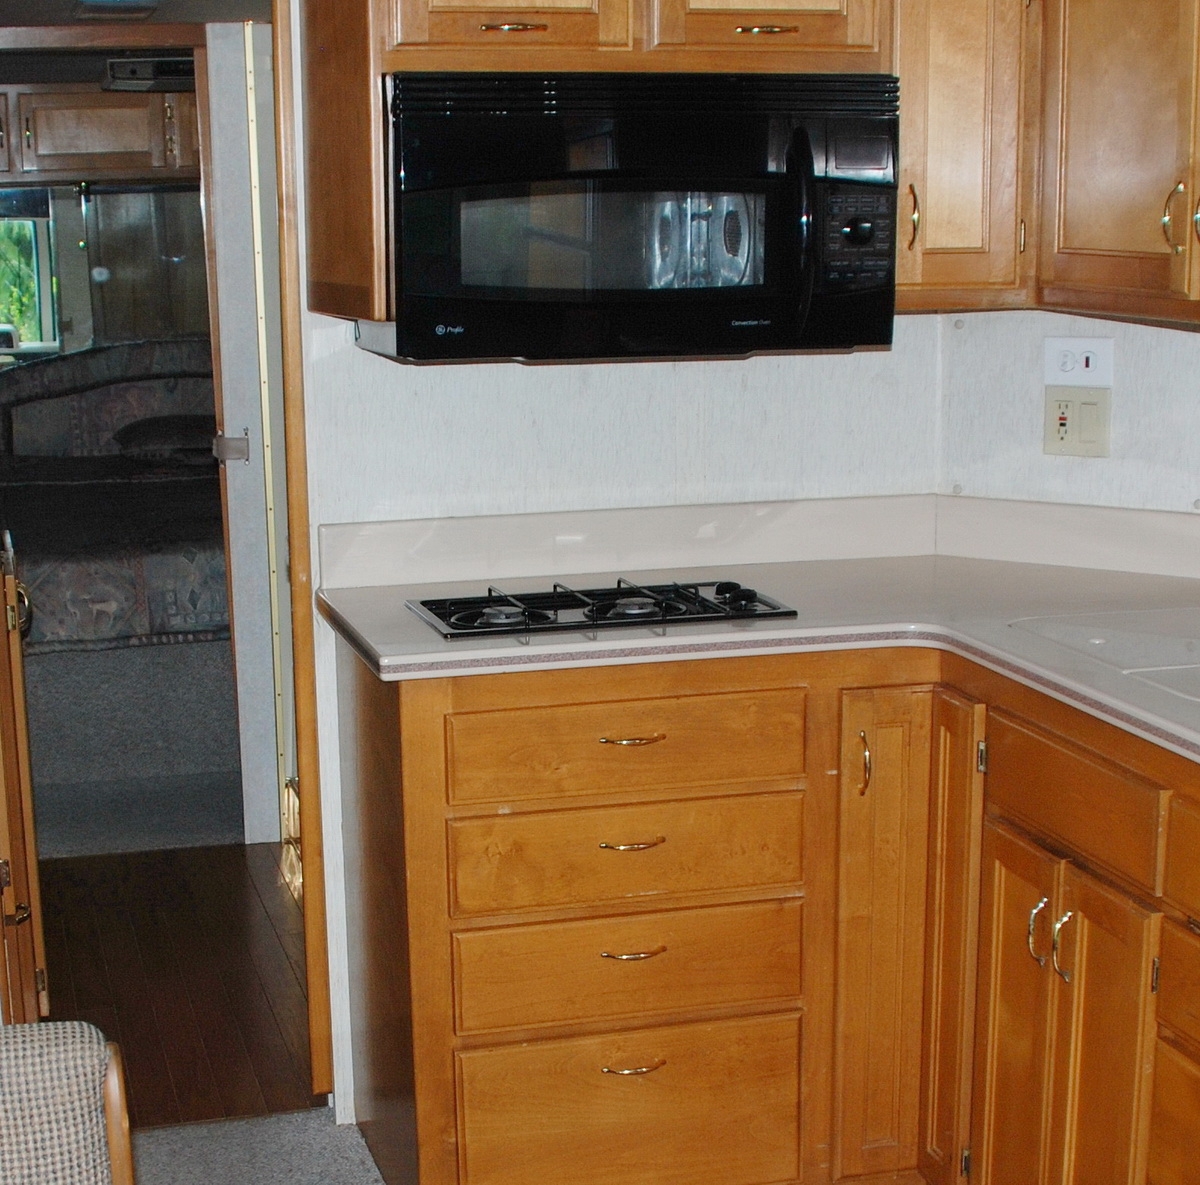 hight resolution of our 1996 safari sahara 3530 came with a seaward princess 2273 two burner stove these